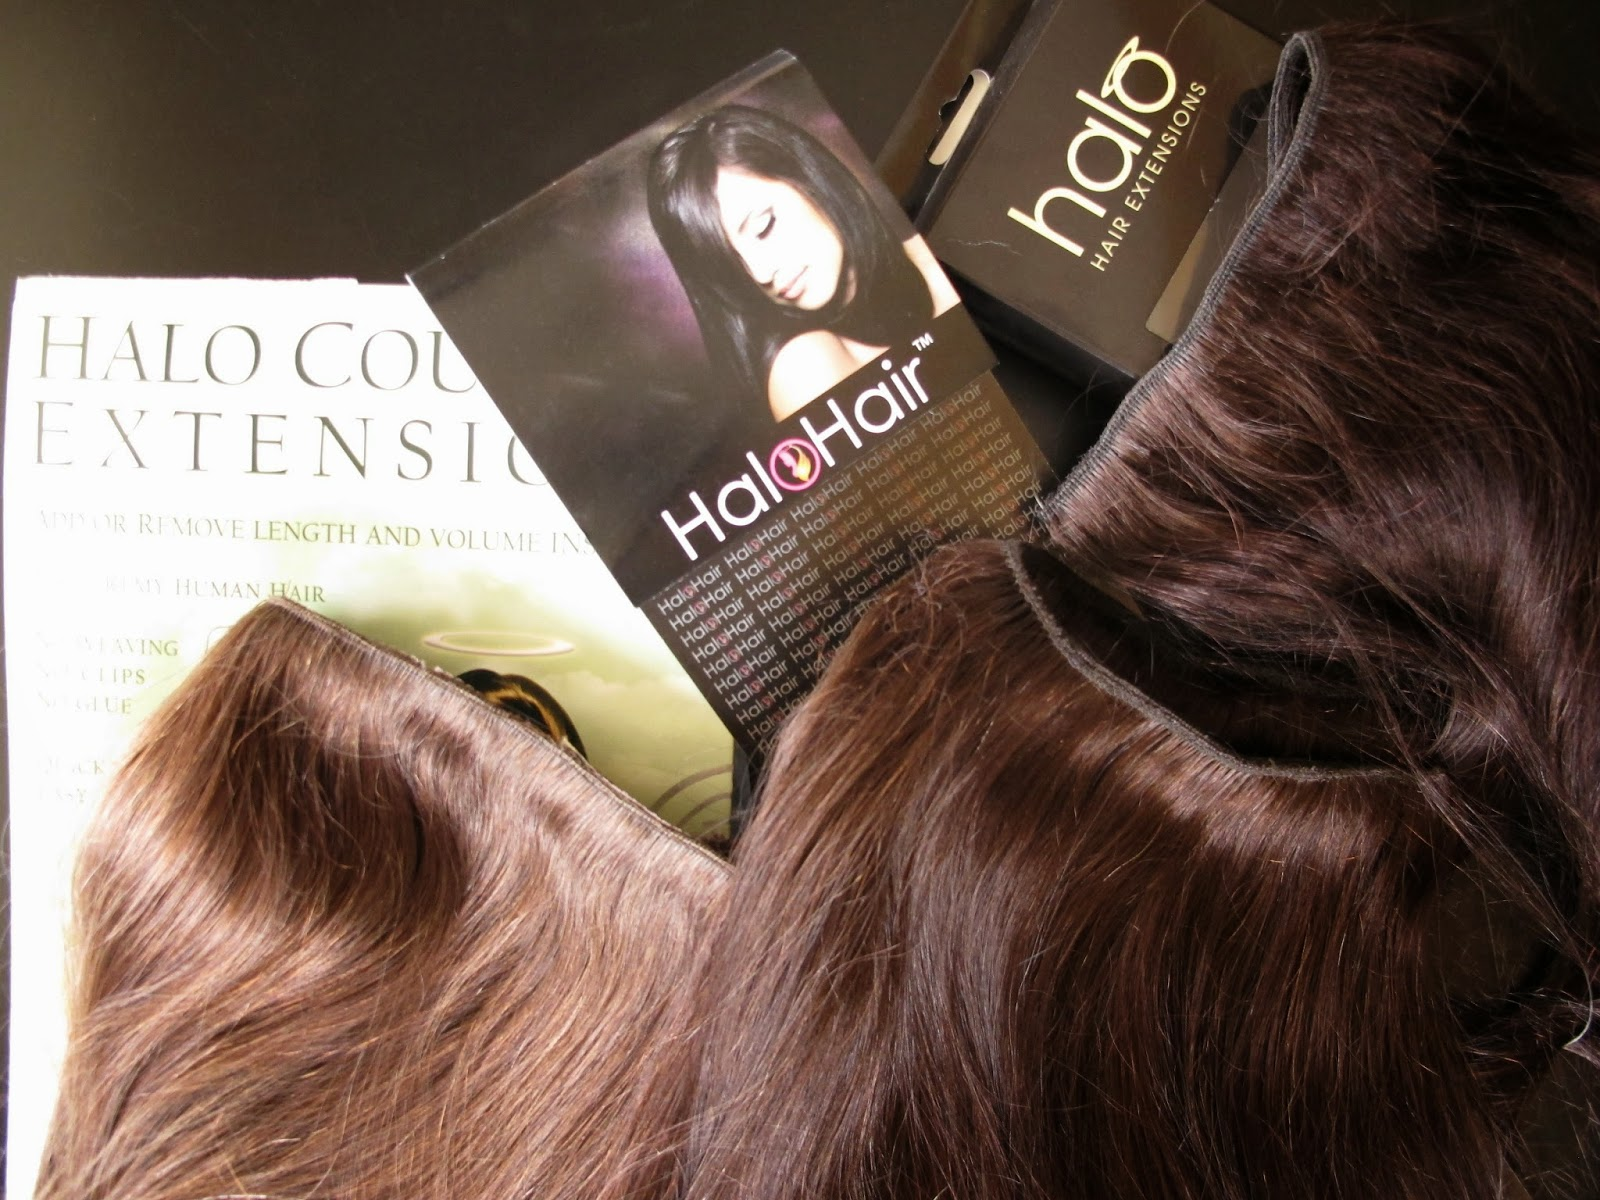 Halo Couture Hair Extensions Video 51